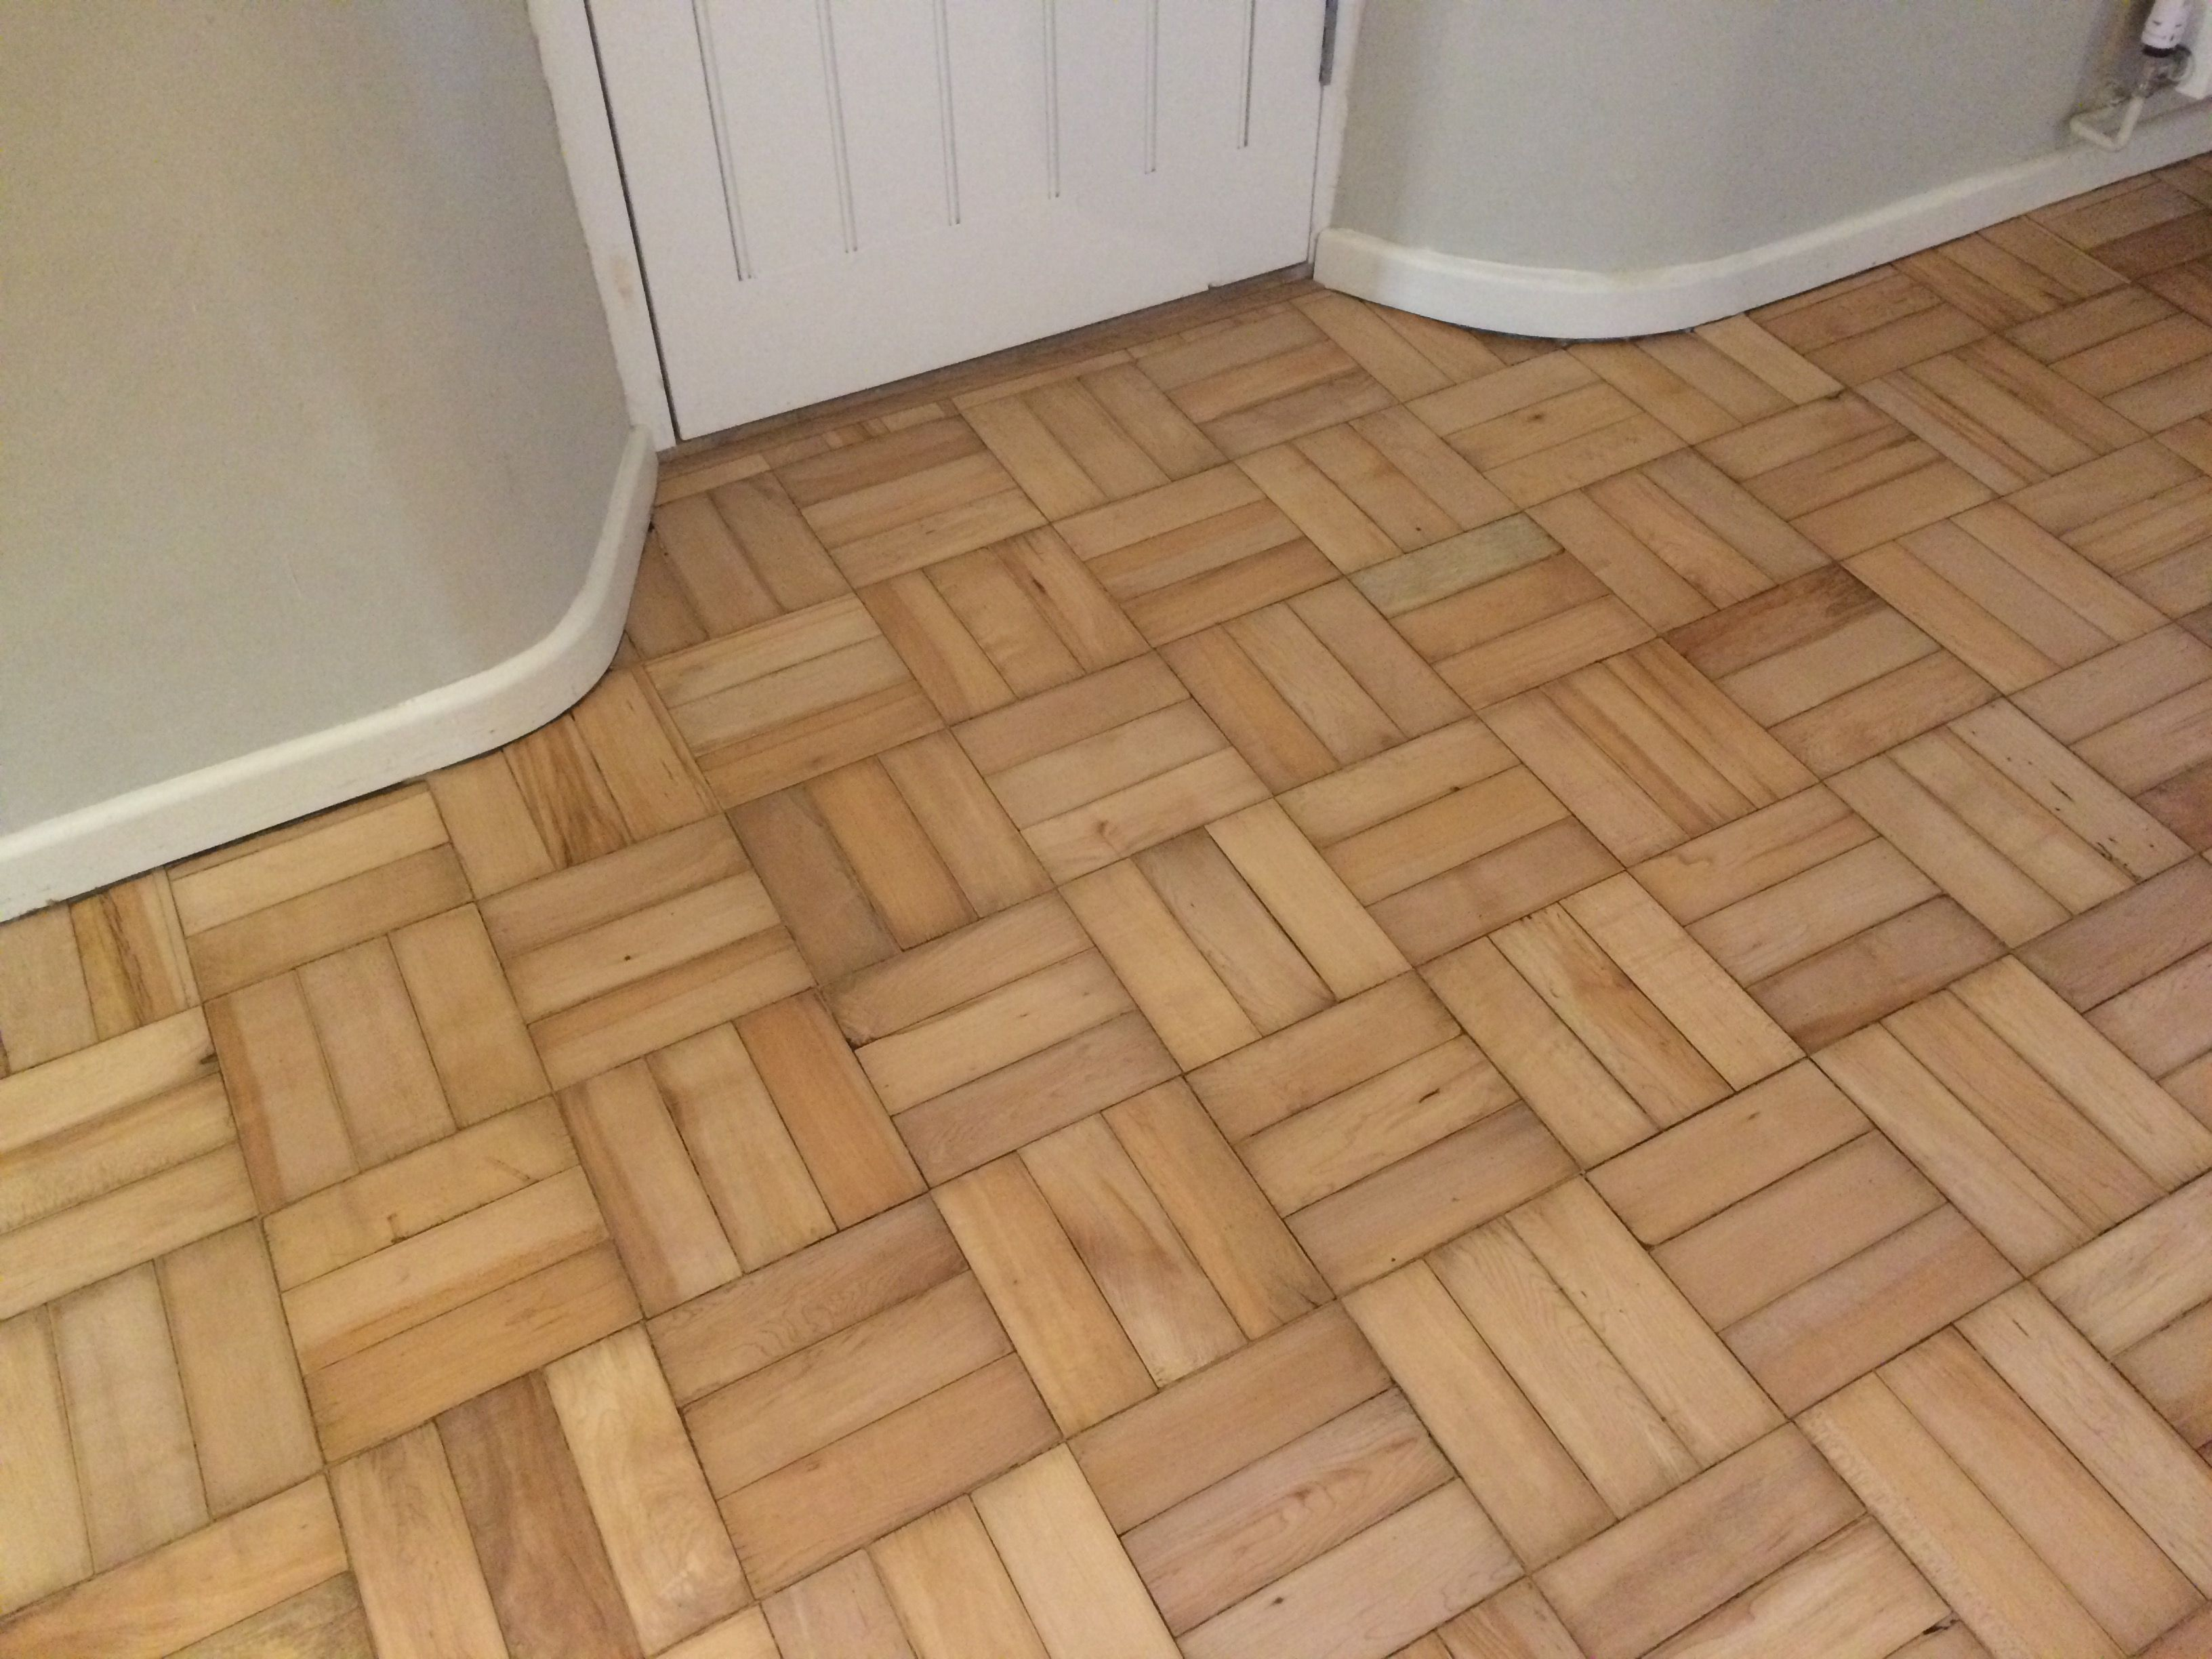 Parquet Restored Our Craftsman Salisbury Wood Replaced Repaired The Damaged Parquet Bricks And Finished With A Sand And Seal An Restoration Wood Floors Wood